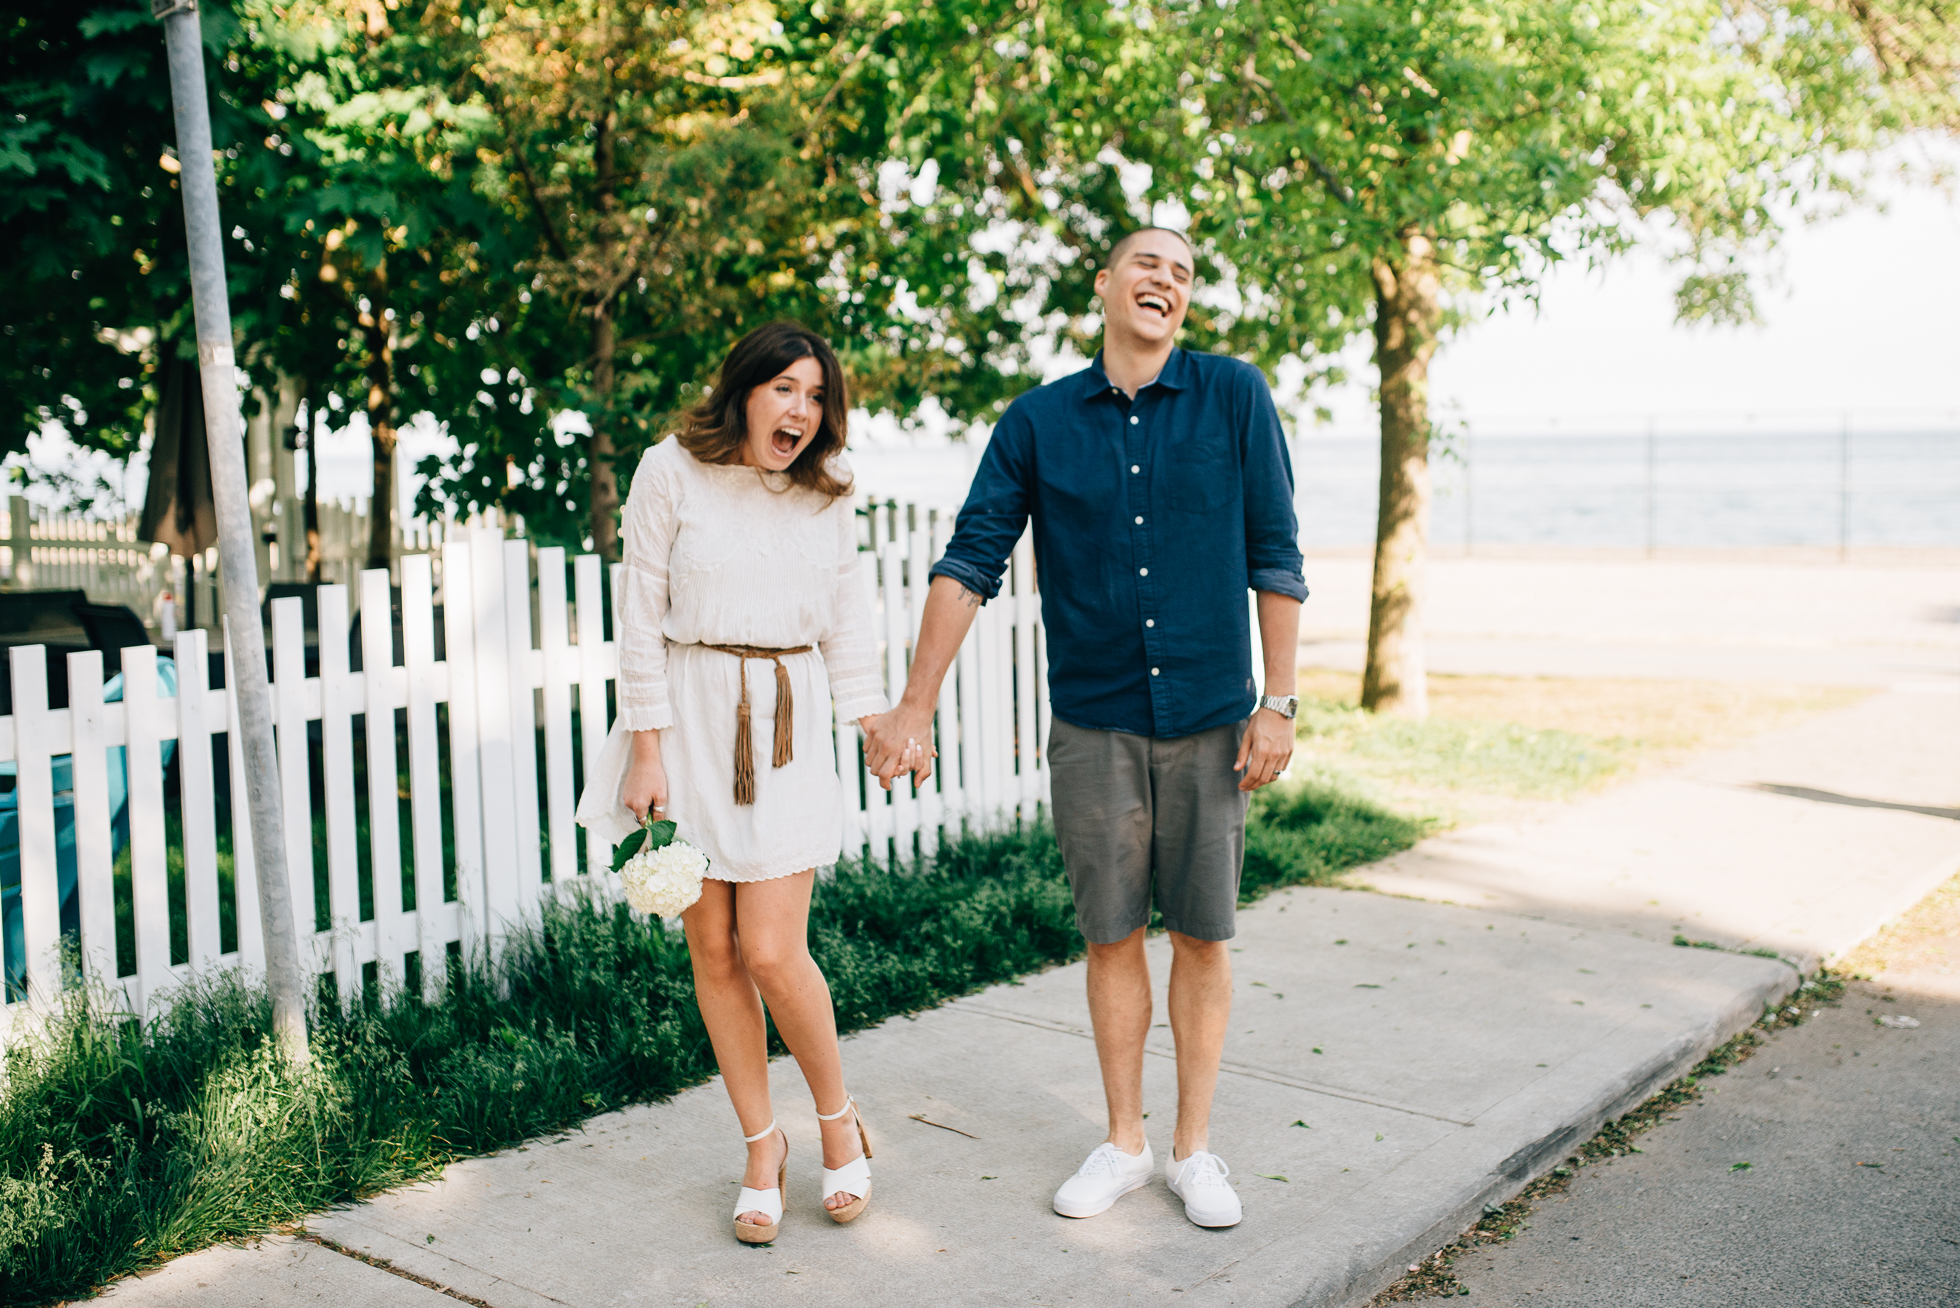 Toronto-Beaches-Elopement-Engagement-Shoot-25